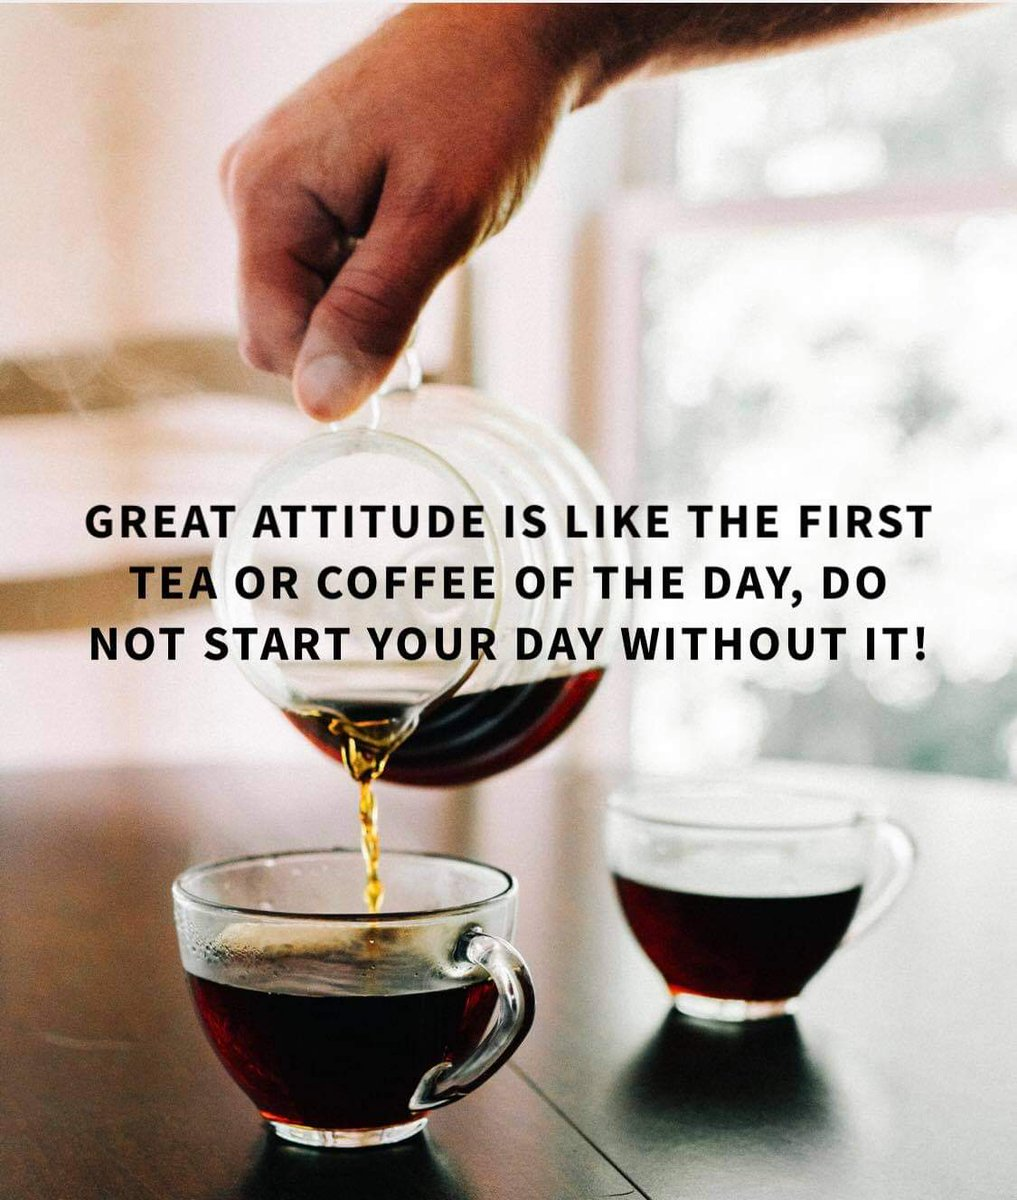 gastropascoe - Gastro's quote of the day; Great attitude is like the first Tea of Coffee of the day, do not start your day without it! @HunterDoggz @WardogLive @cozobro @flashover109 @Nate9616 @deltamurf @pinkybean_1 @2budsx1blunt